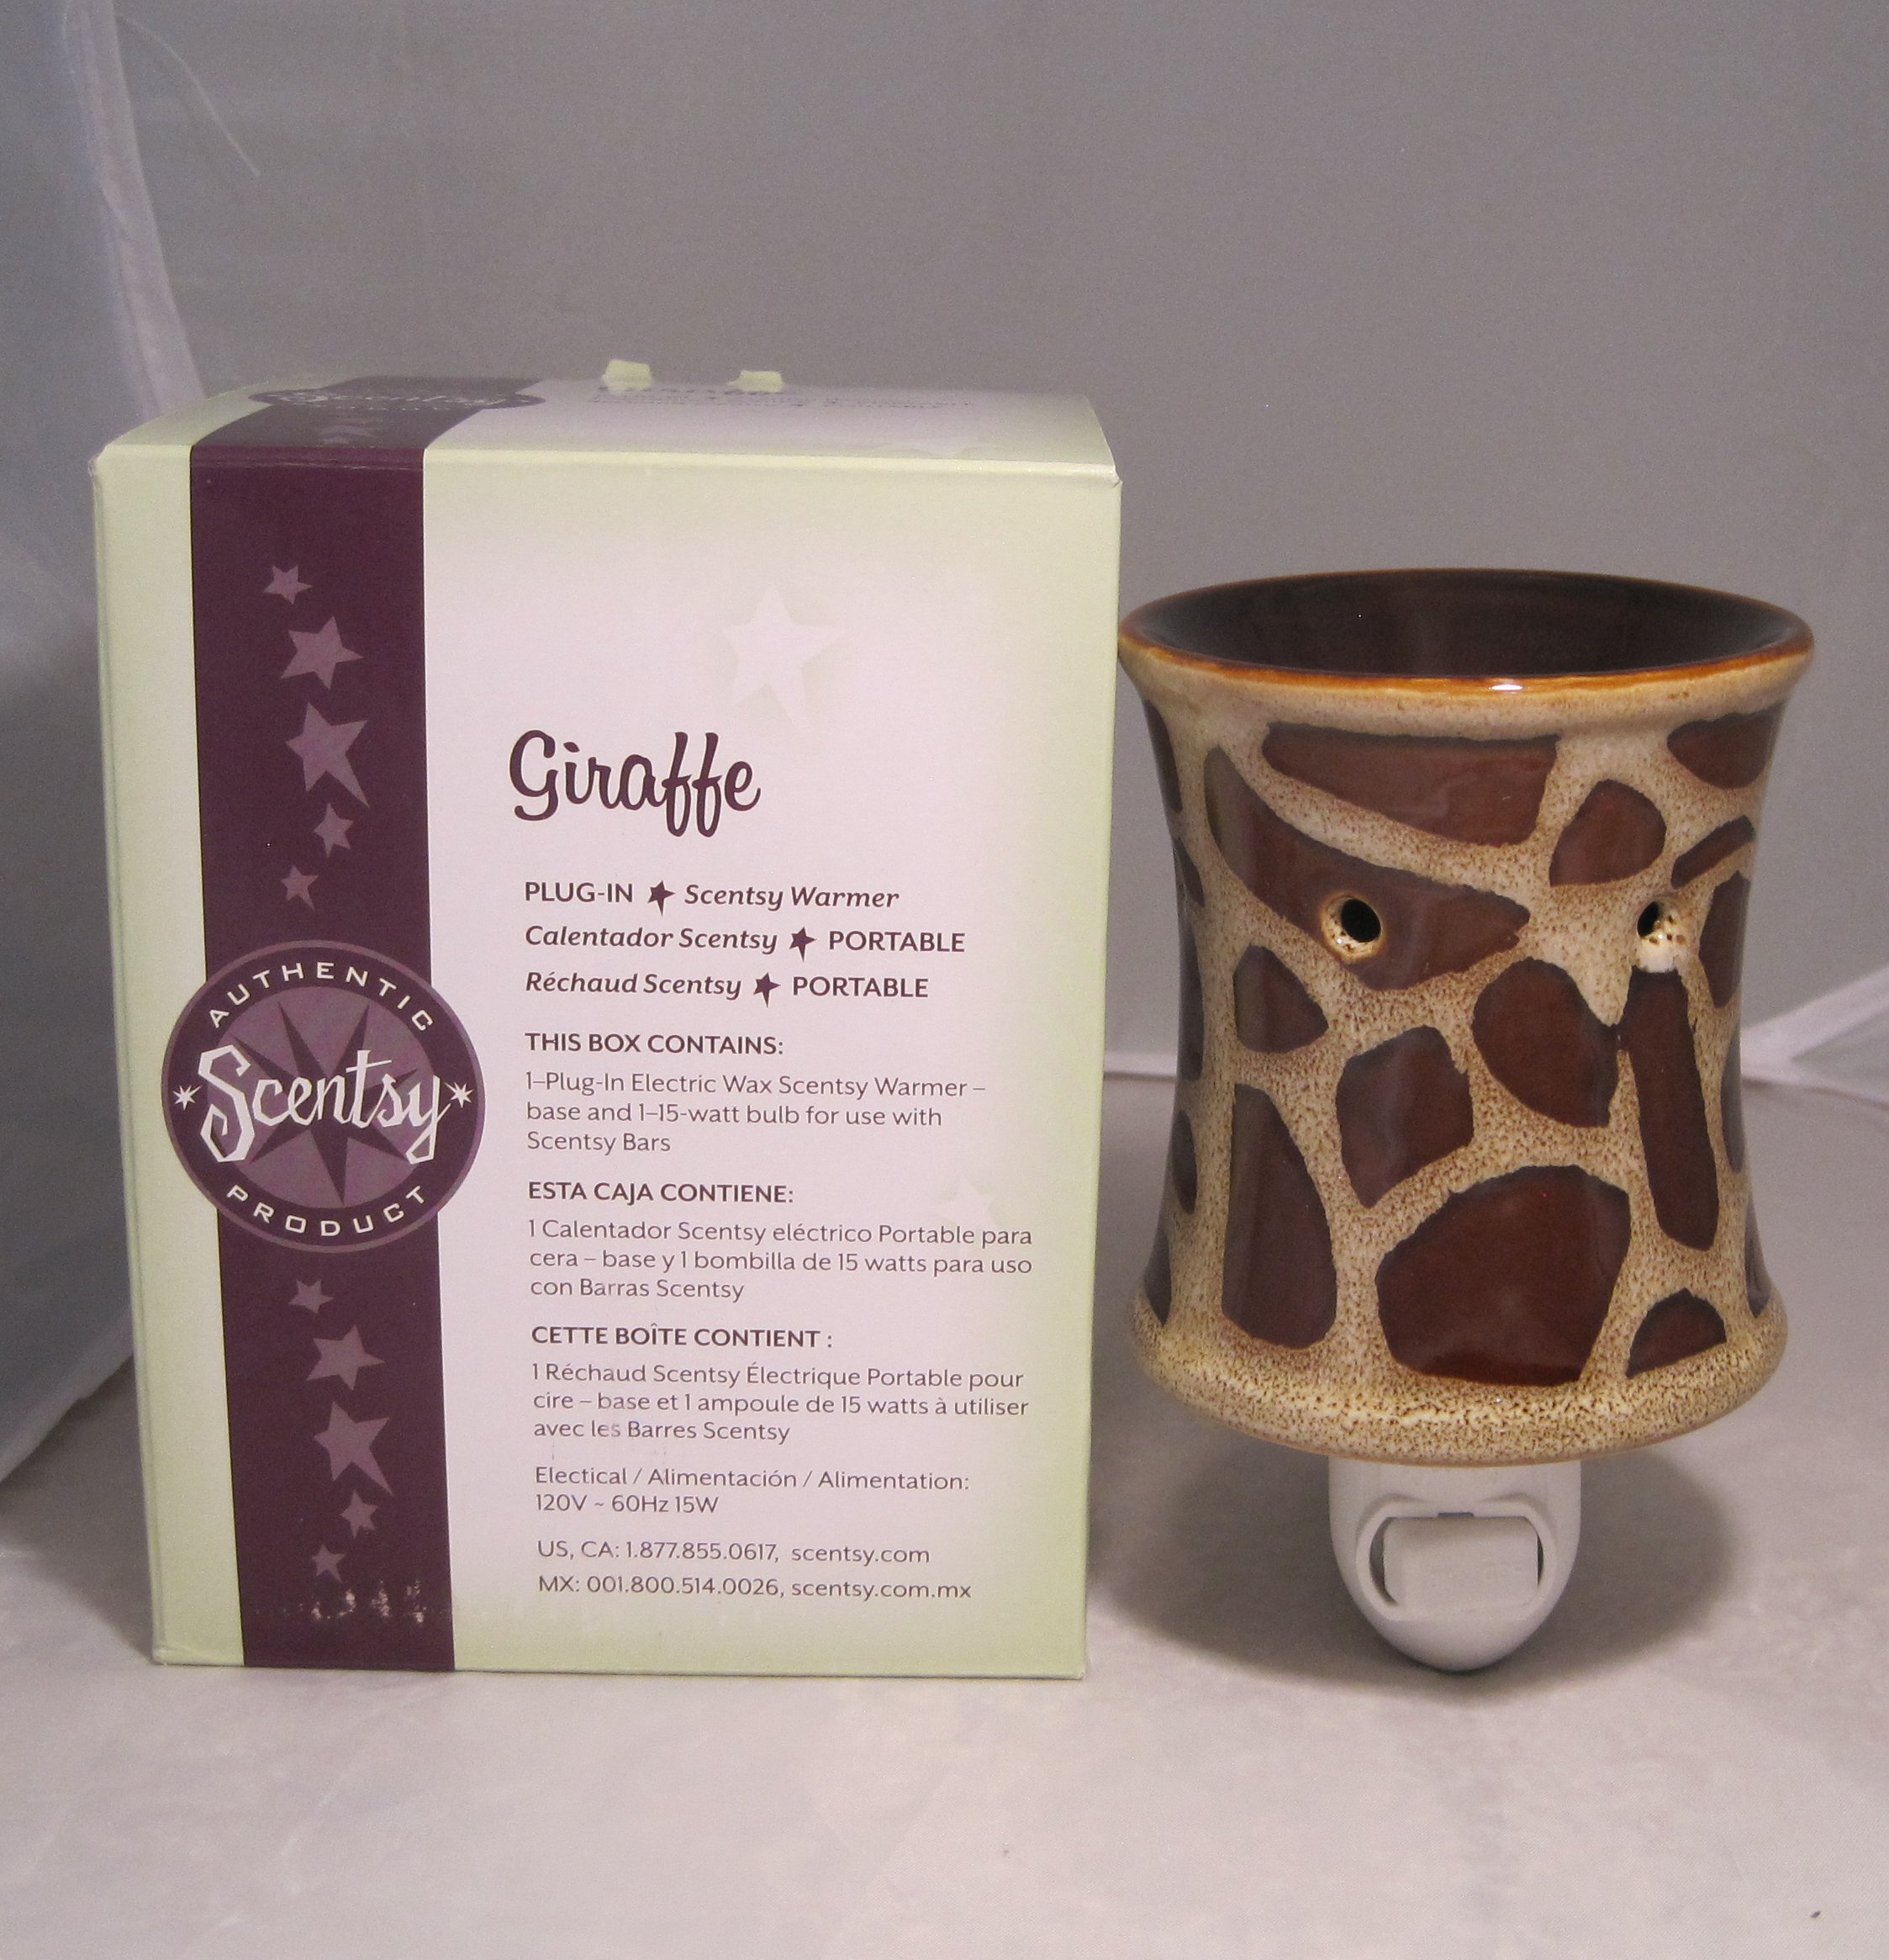 Scentsy Nightlight Warmer, ''Giraffe'', Animal Print Nightlight Plug-in Warmer Burner